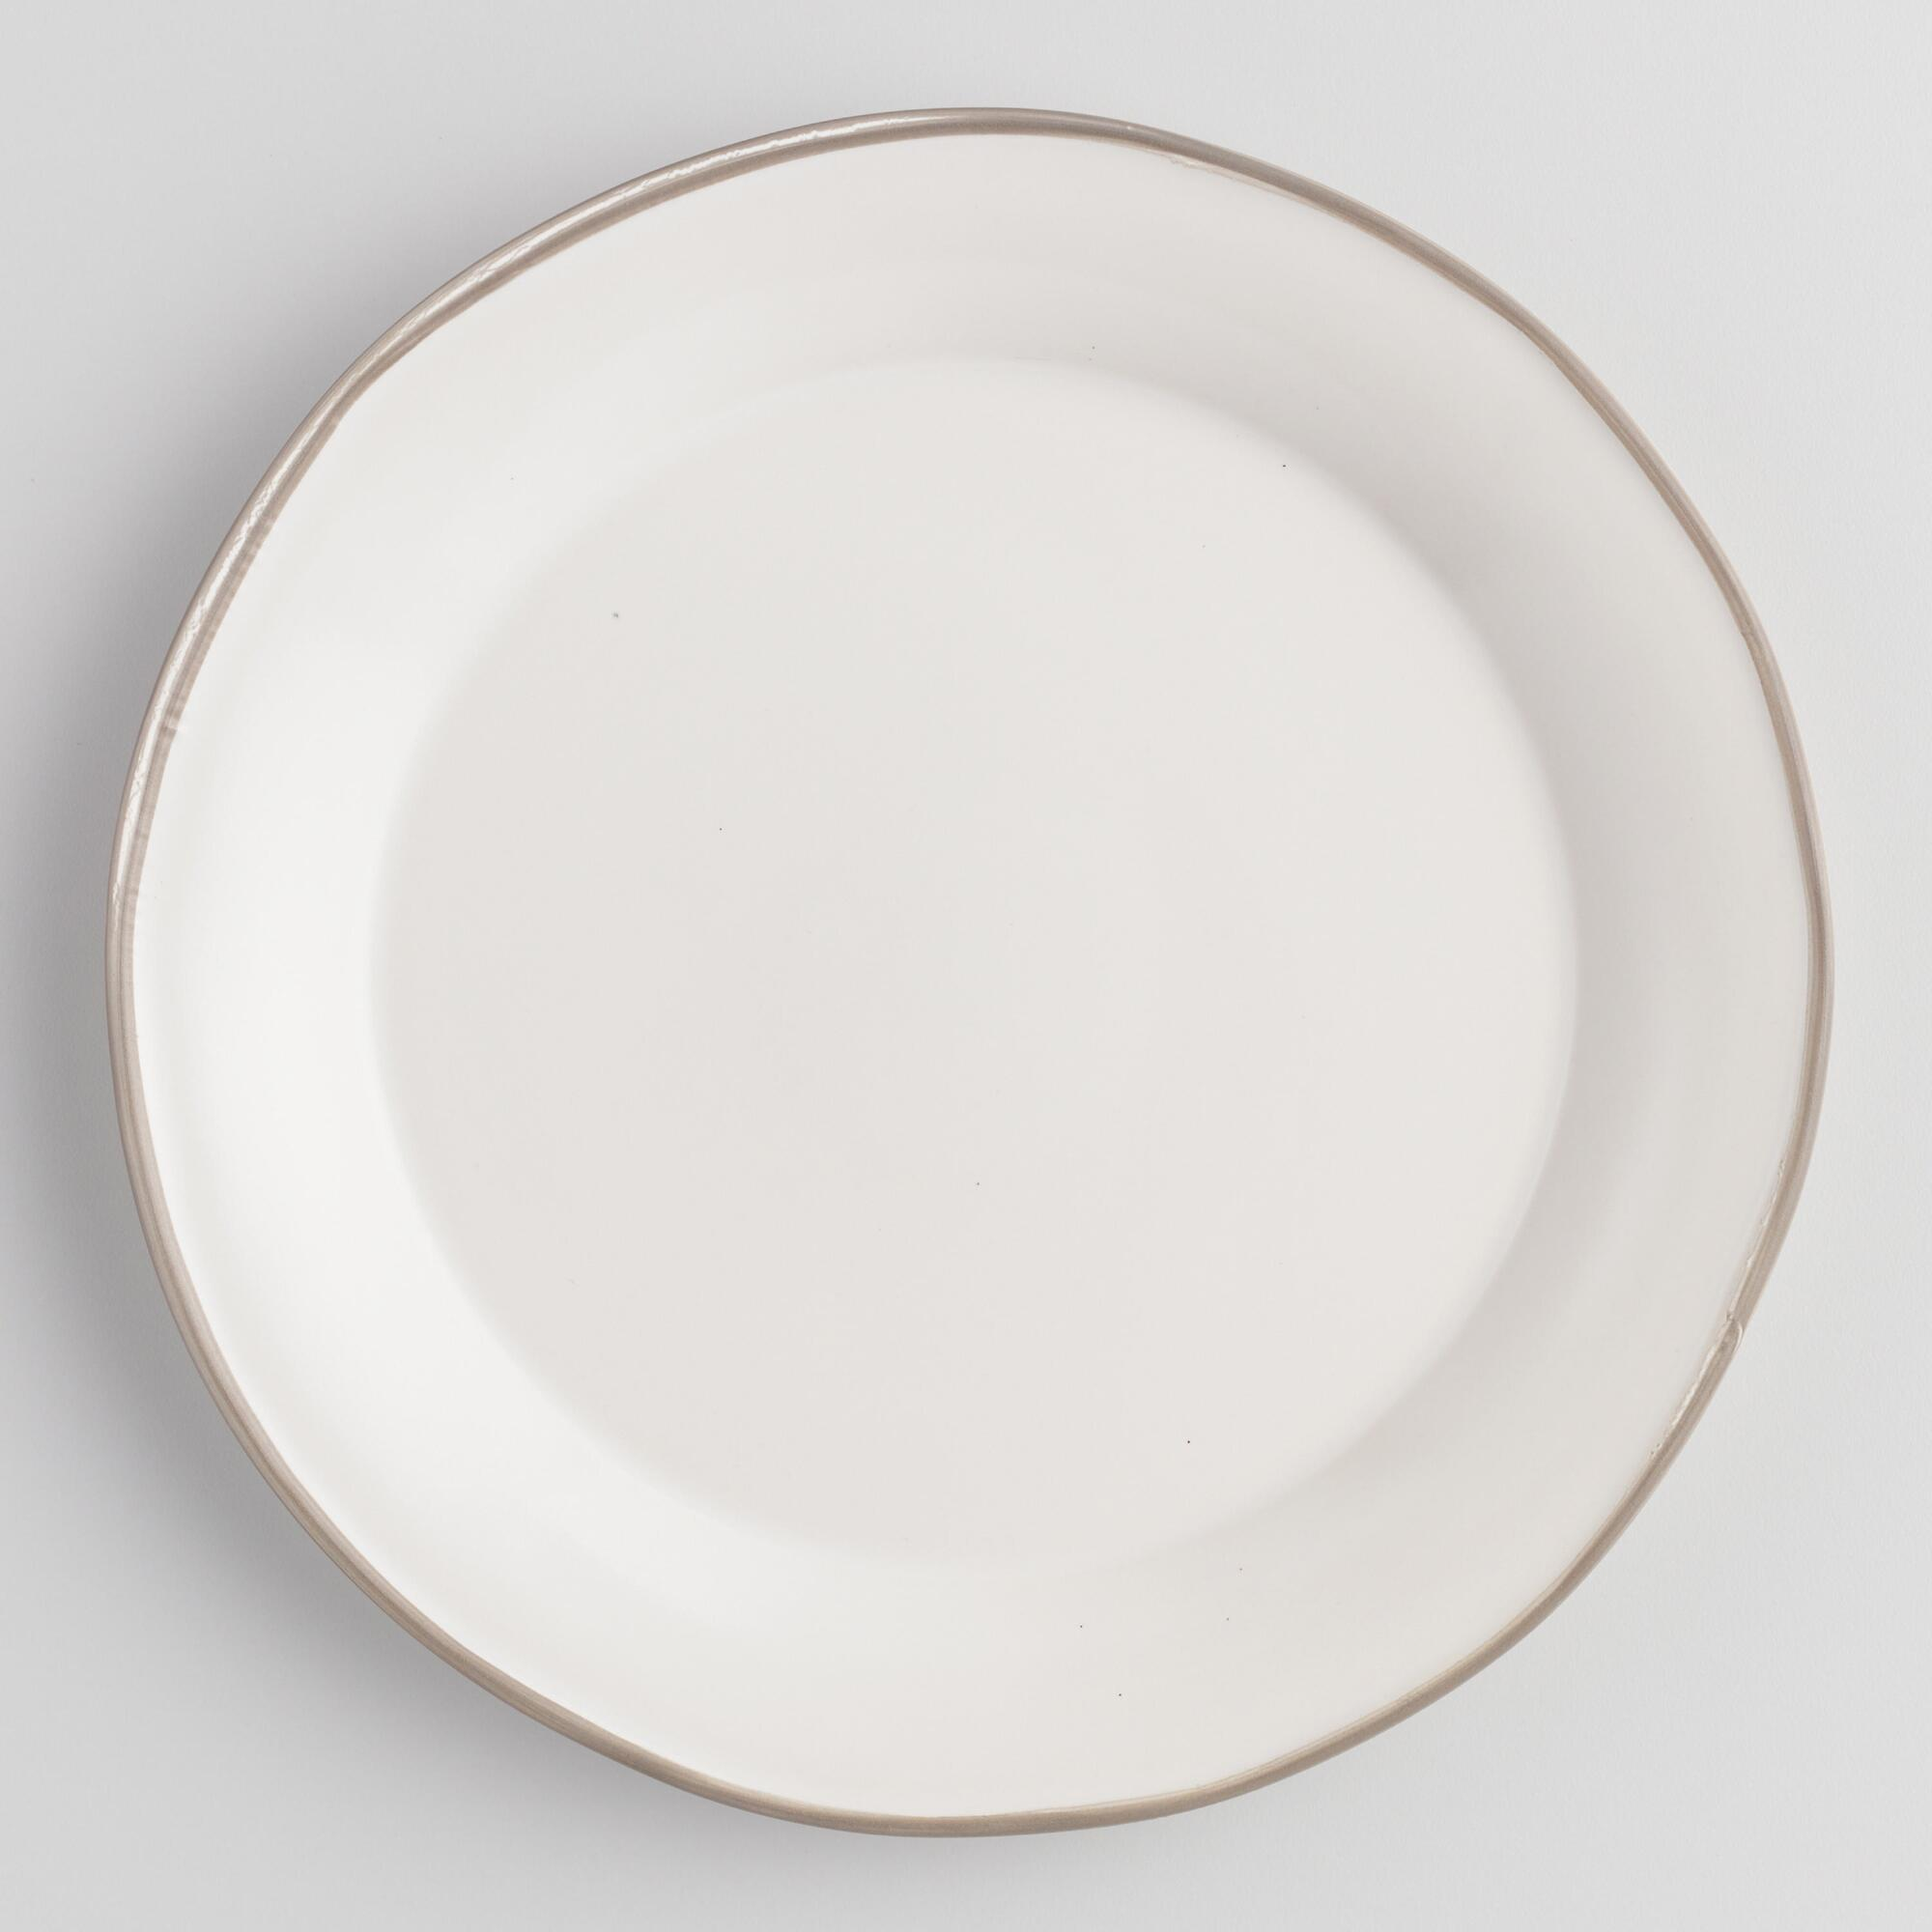 Rustic White And Gray Fatima Dinner Plates Set Of 4 by World Market